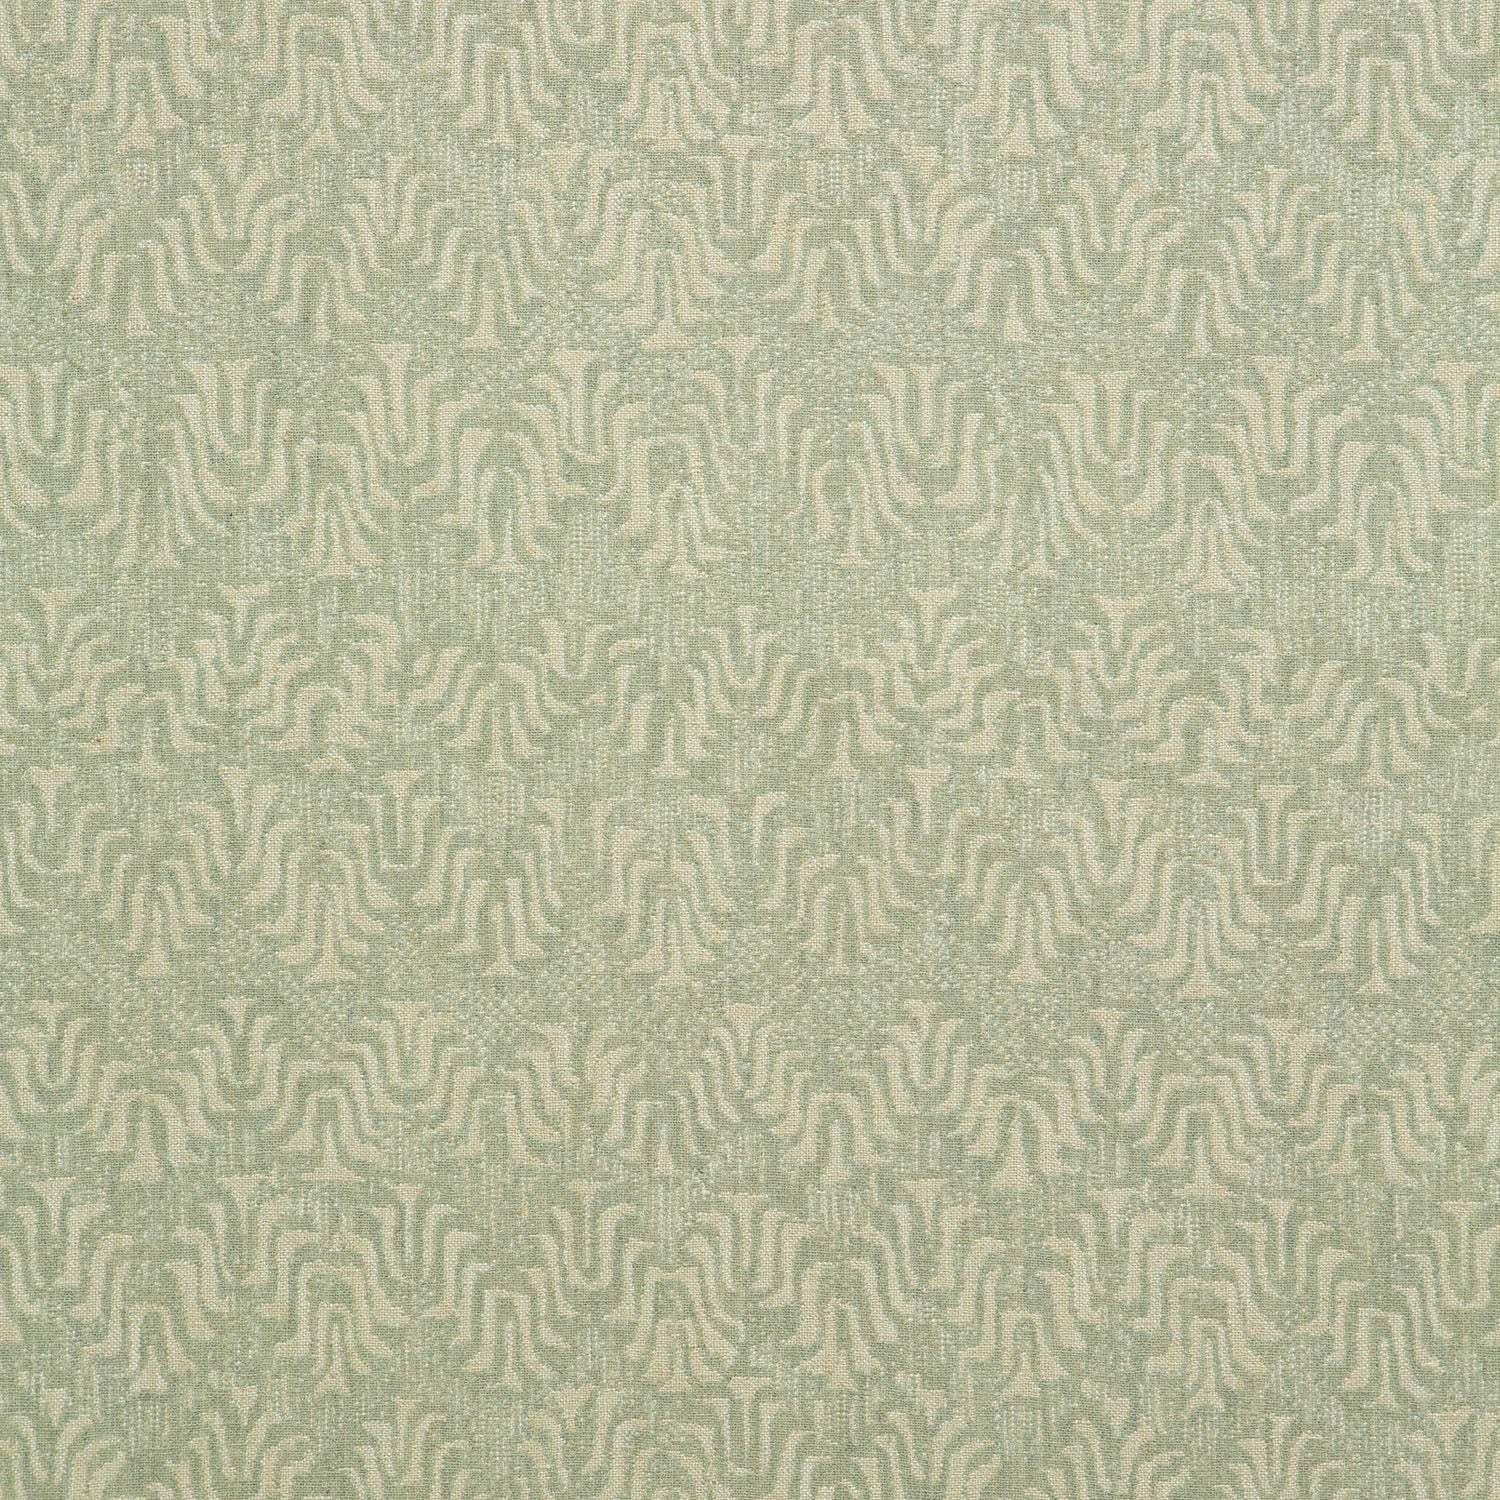 Fabric swatch of a light turquoise and neutral jacquard weave fabric for curtains and upholstery